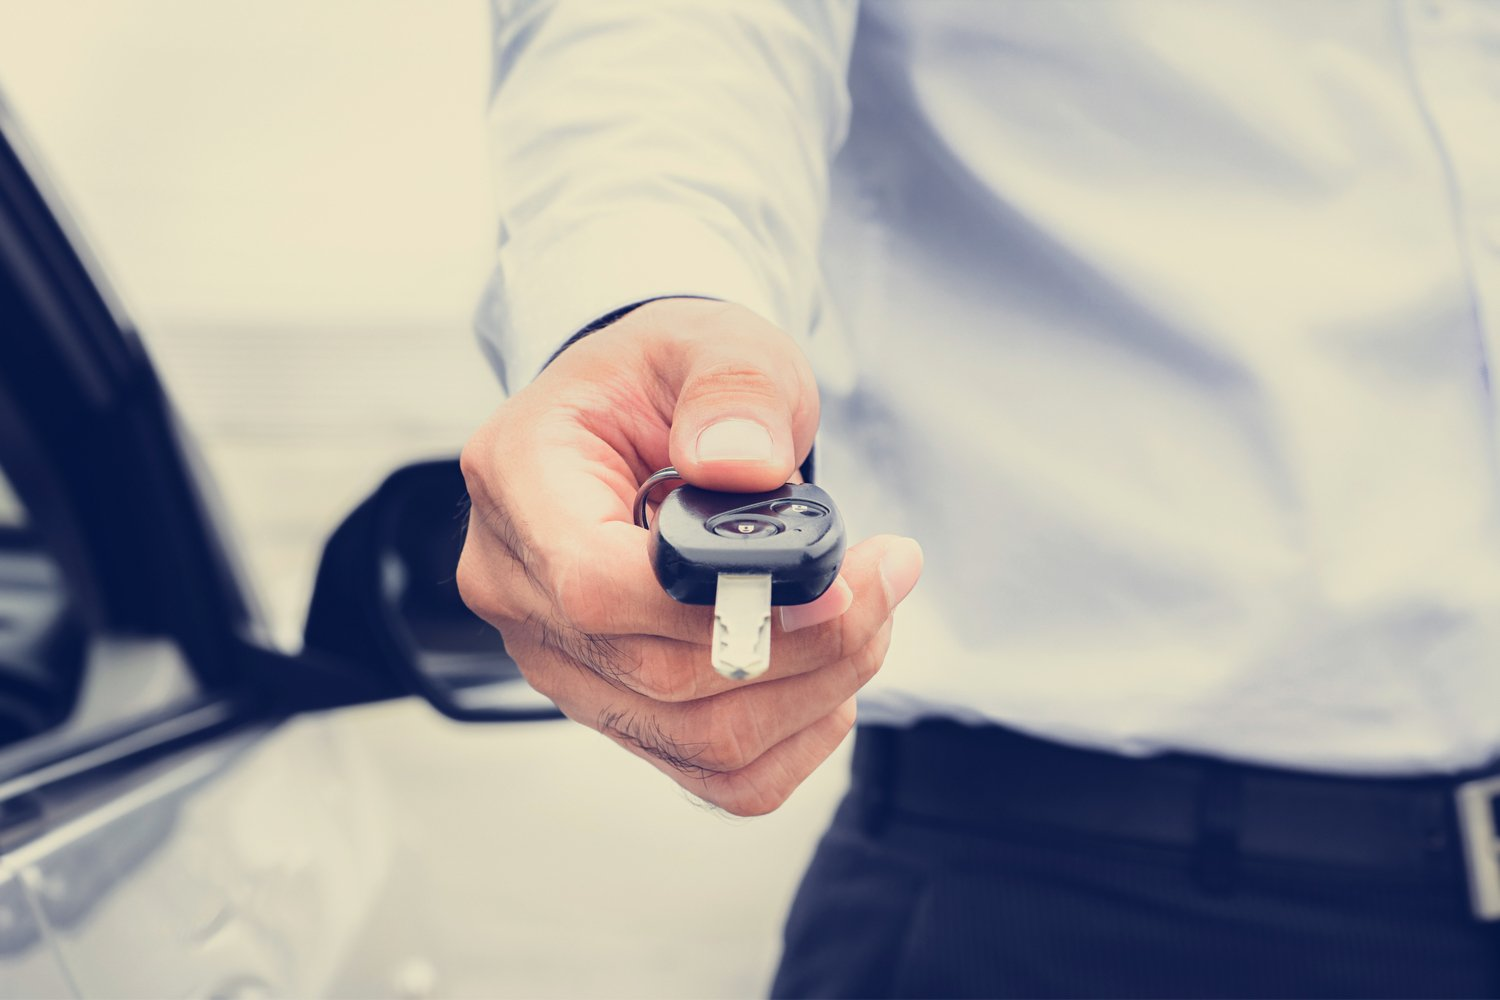 business auto loans without personal guarantee